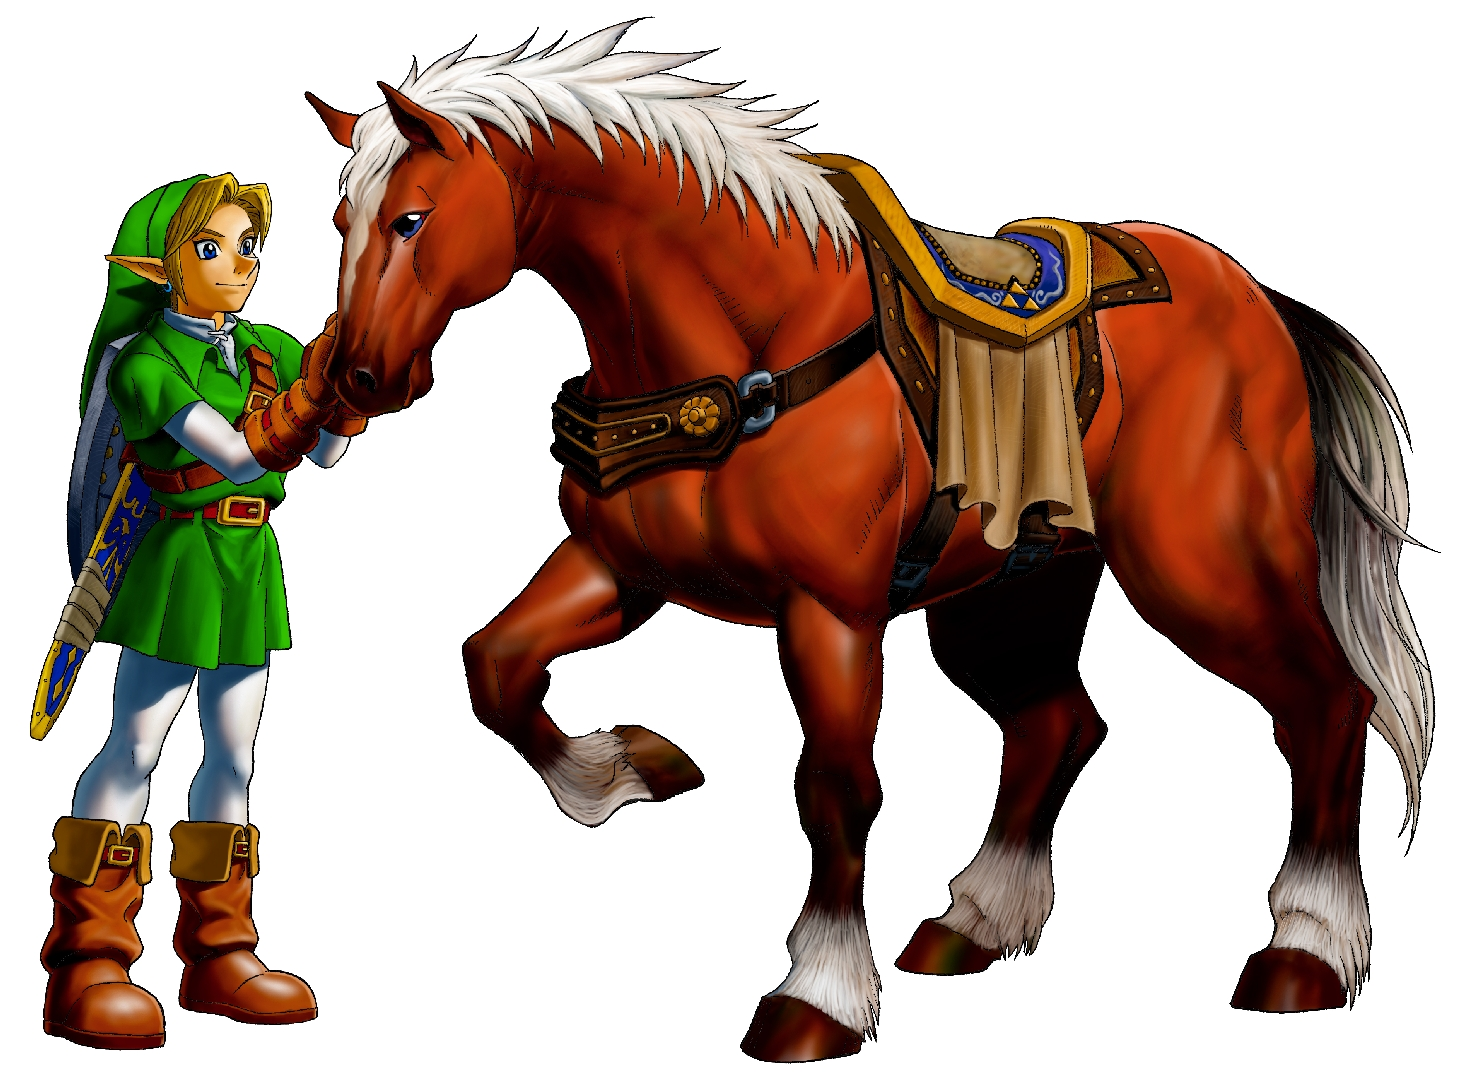 ocarina of time vs 3ds